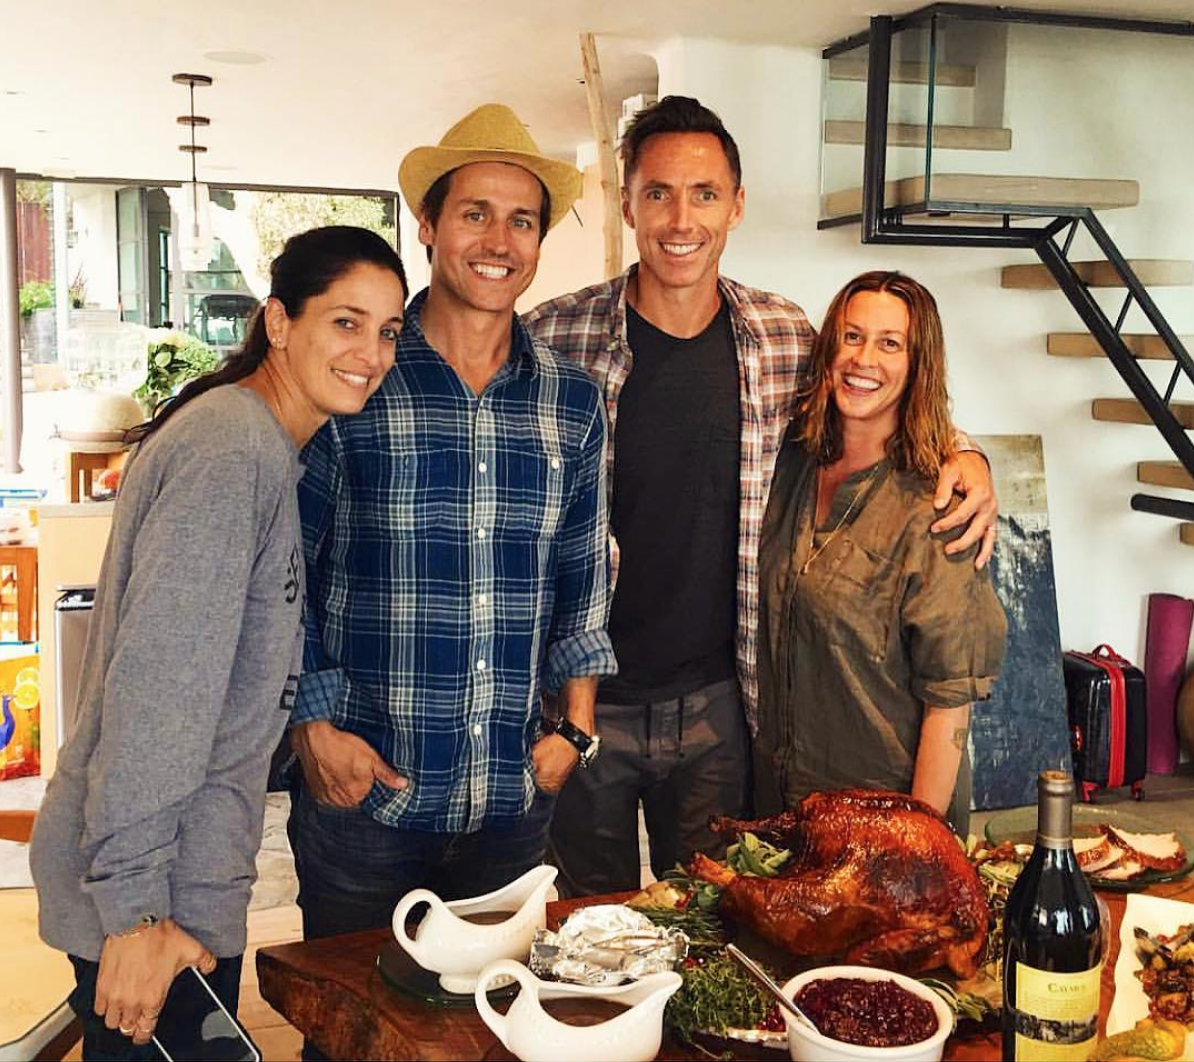 My first crack at cooking a Canadian Thanksgiving! Thankful for these superstar maple leaves — STEVE NASH, ALANIS, RAINE MAIDA & CHANTAL KREVIAZUK